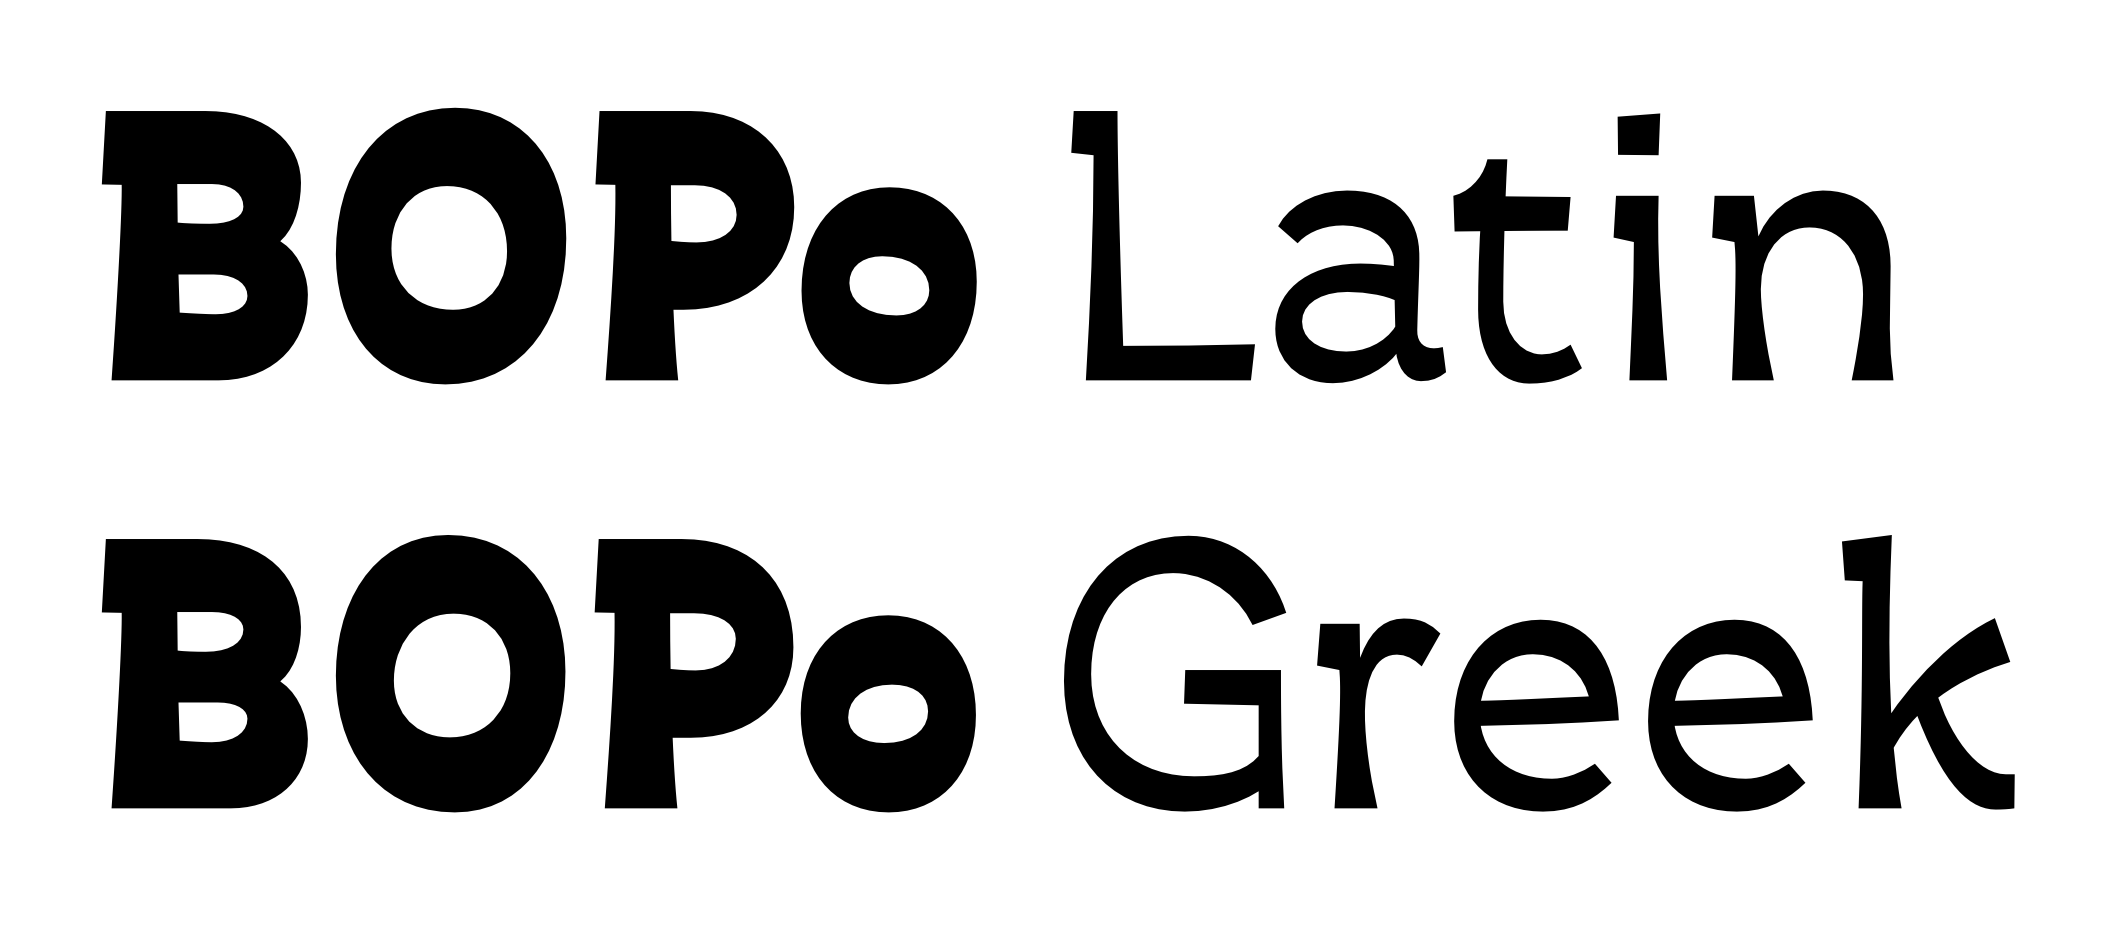 Practical uses for unambiguous LCG fonts? — TypeDrawers